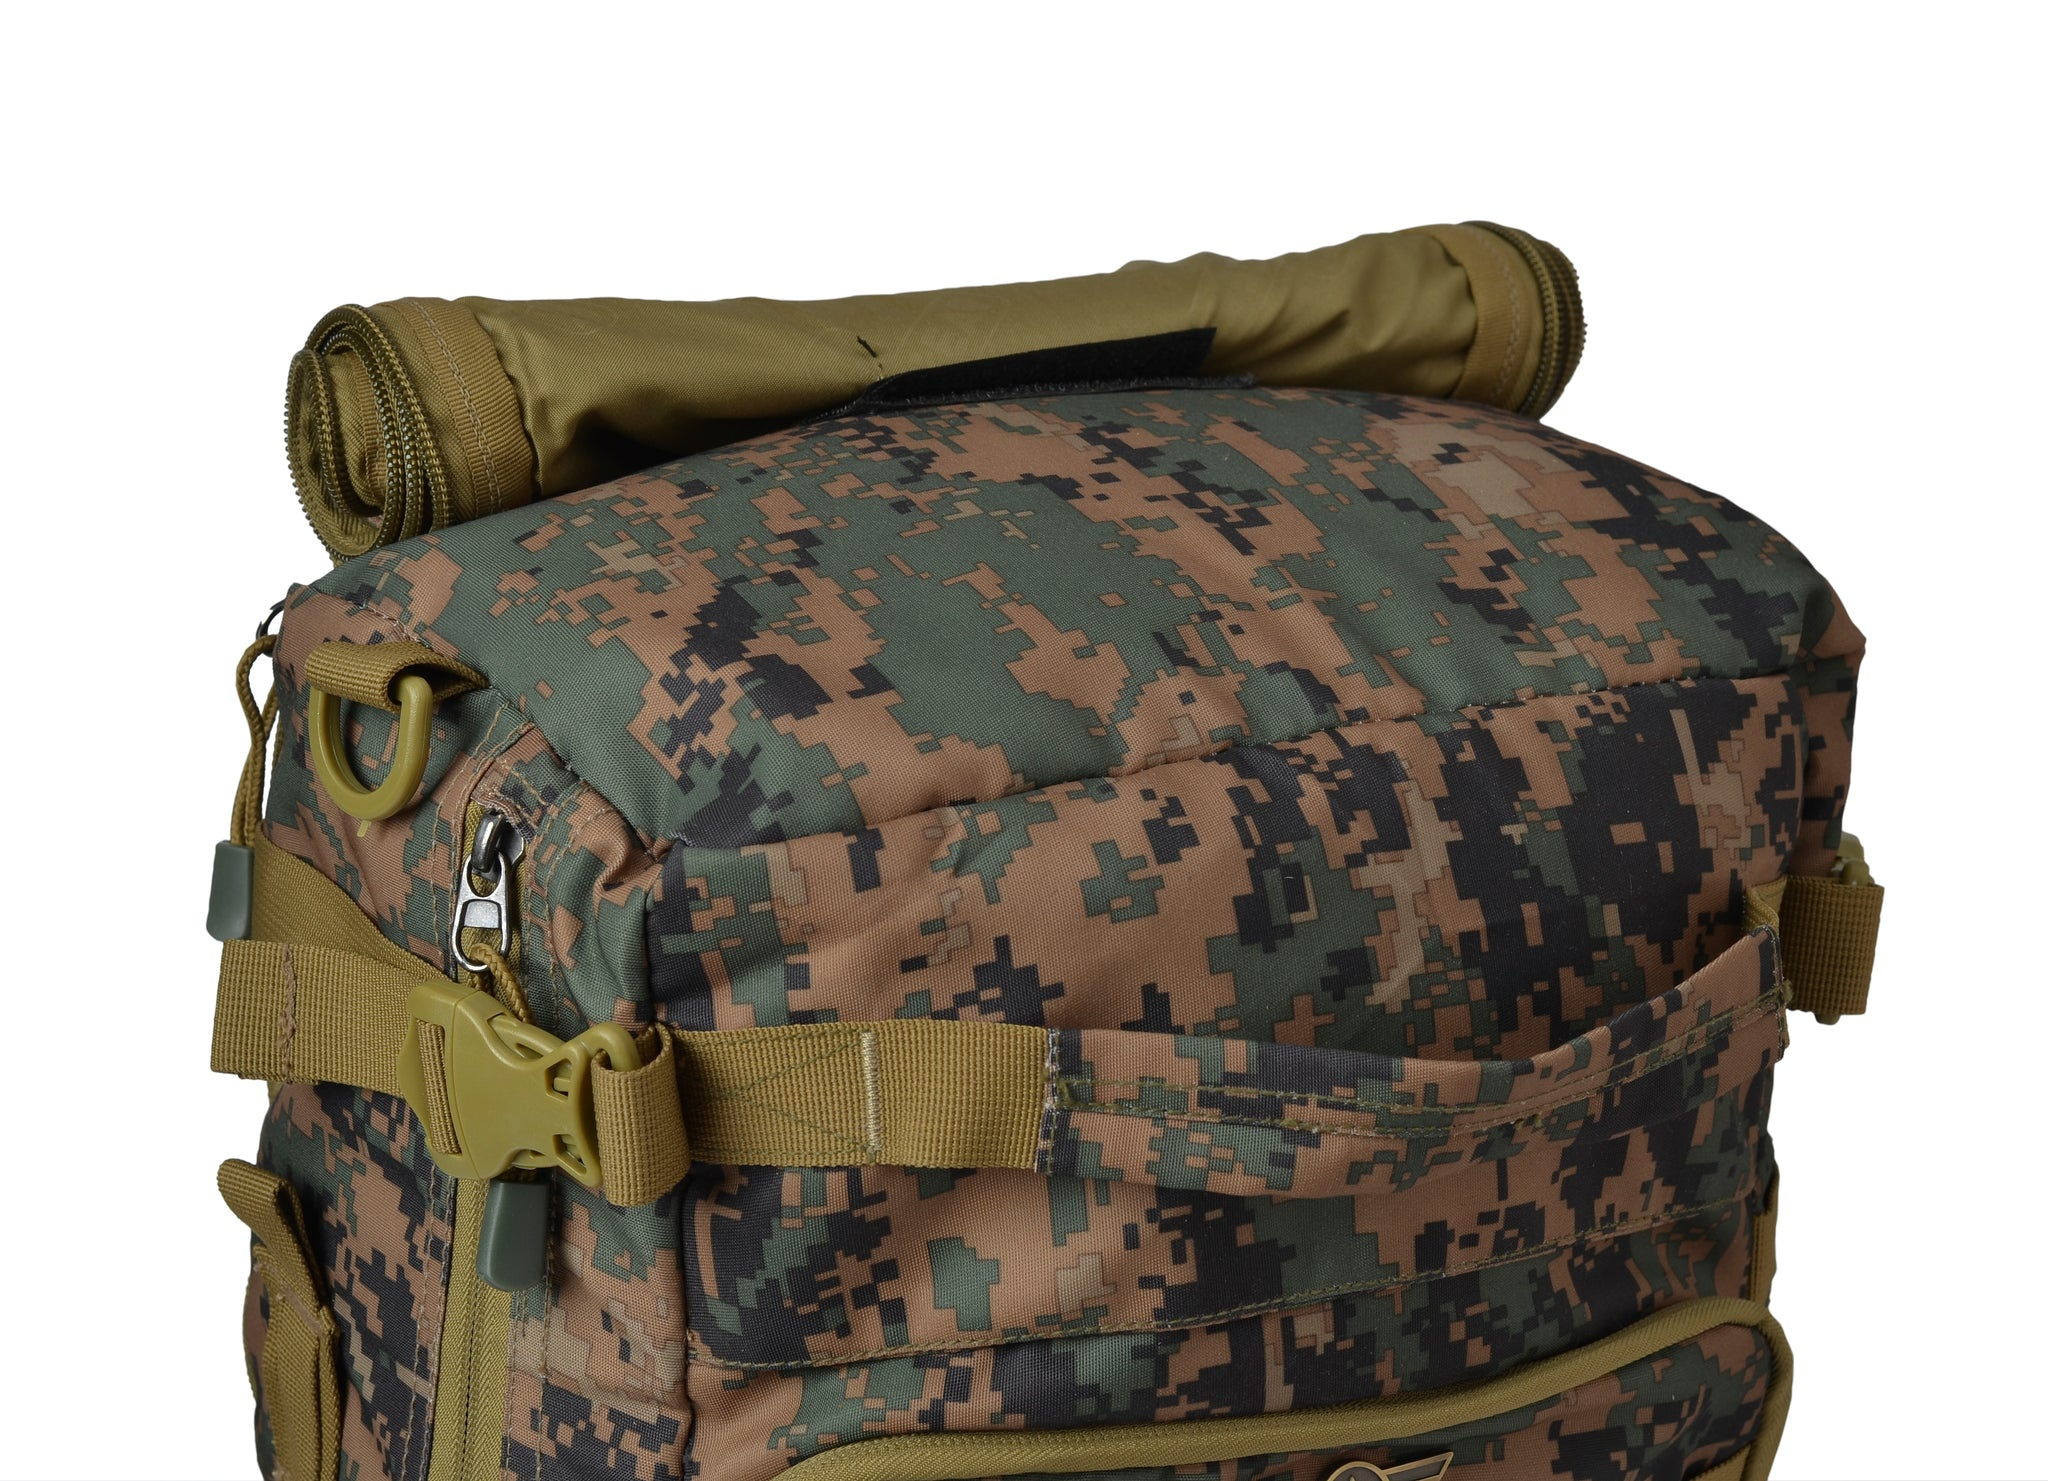 F Gear Military Garrison 36 Liters Rucksack (Marpat WL Digital Camo)